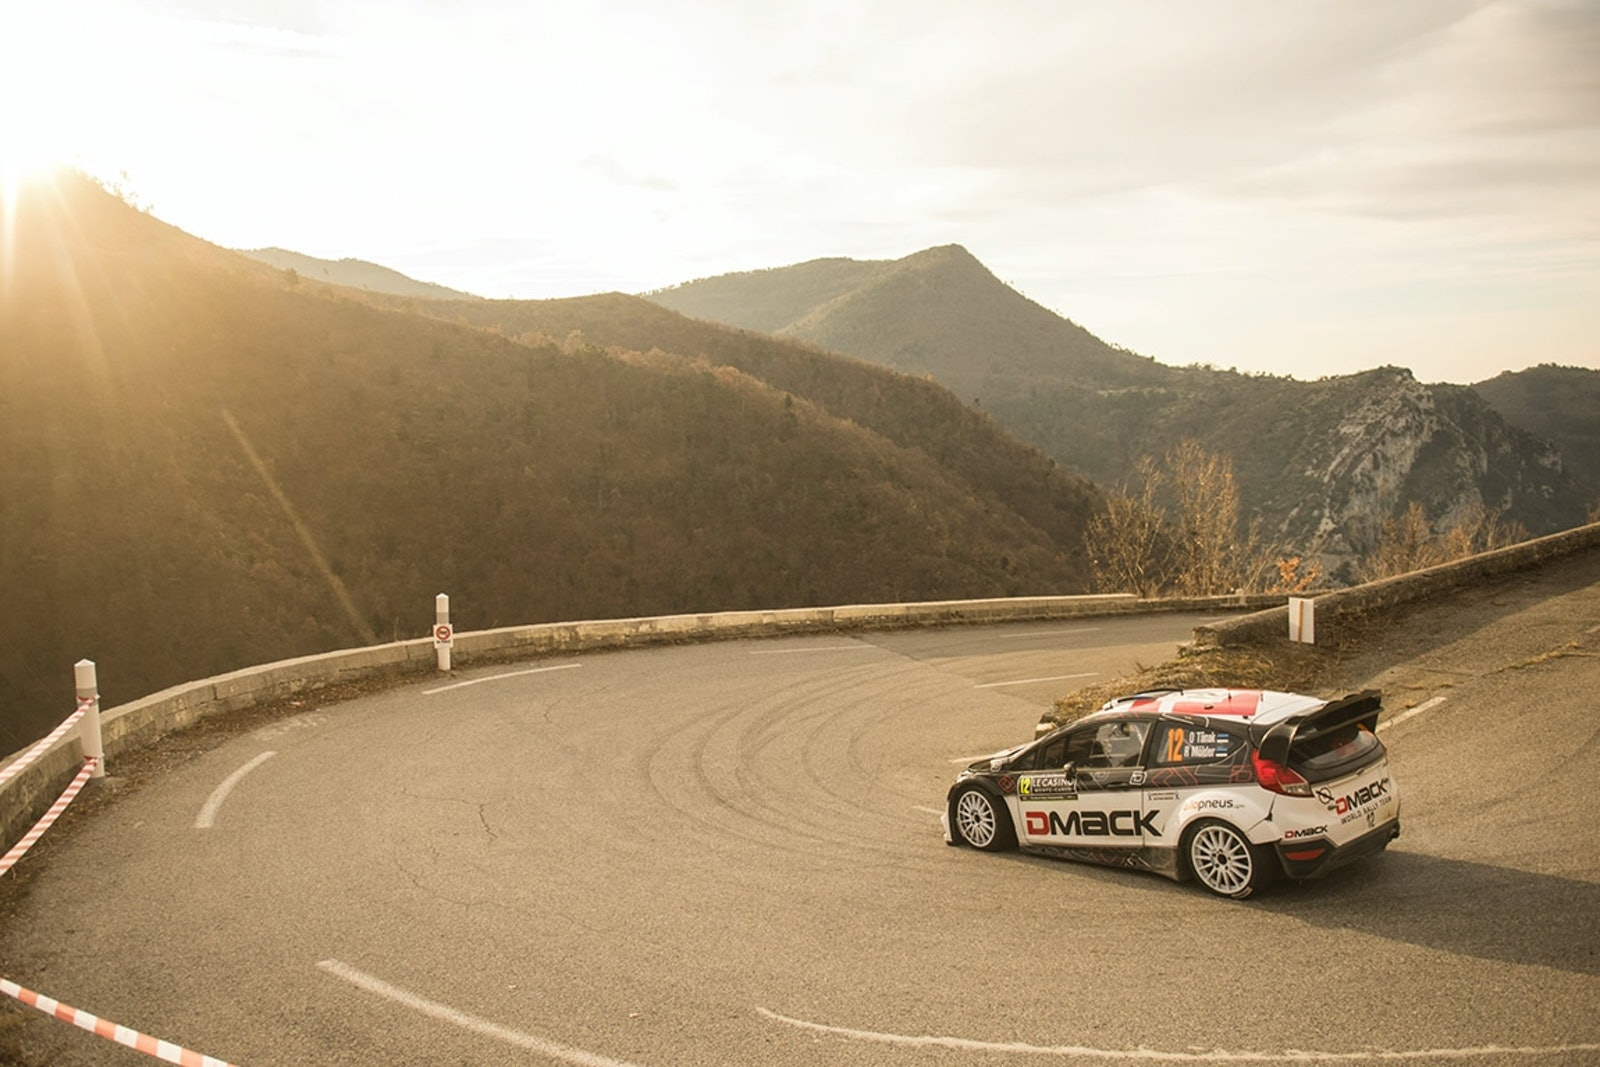 Ott Tanak (Est) competes during the FIA World Rally Championship 2016 in Monte Carlo, Monaco on January 24, 2016 // Jaanus Ree/Red Bull Content Pool // P-20160124-00179 // Usage for editorial use only // Please go to www.redbullcontentpool.com for further information. //